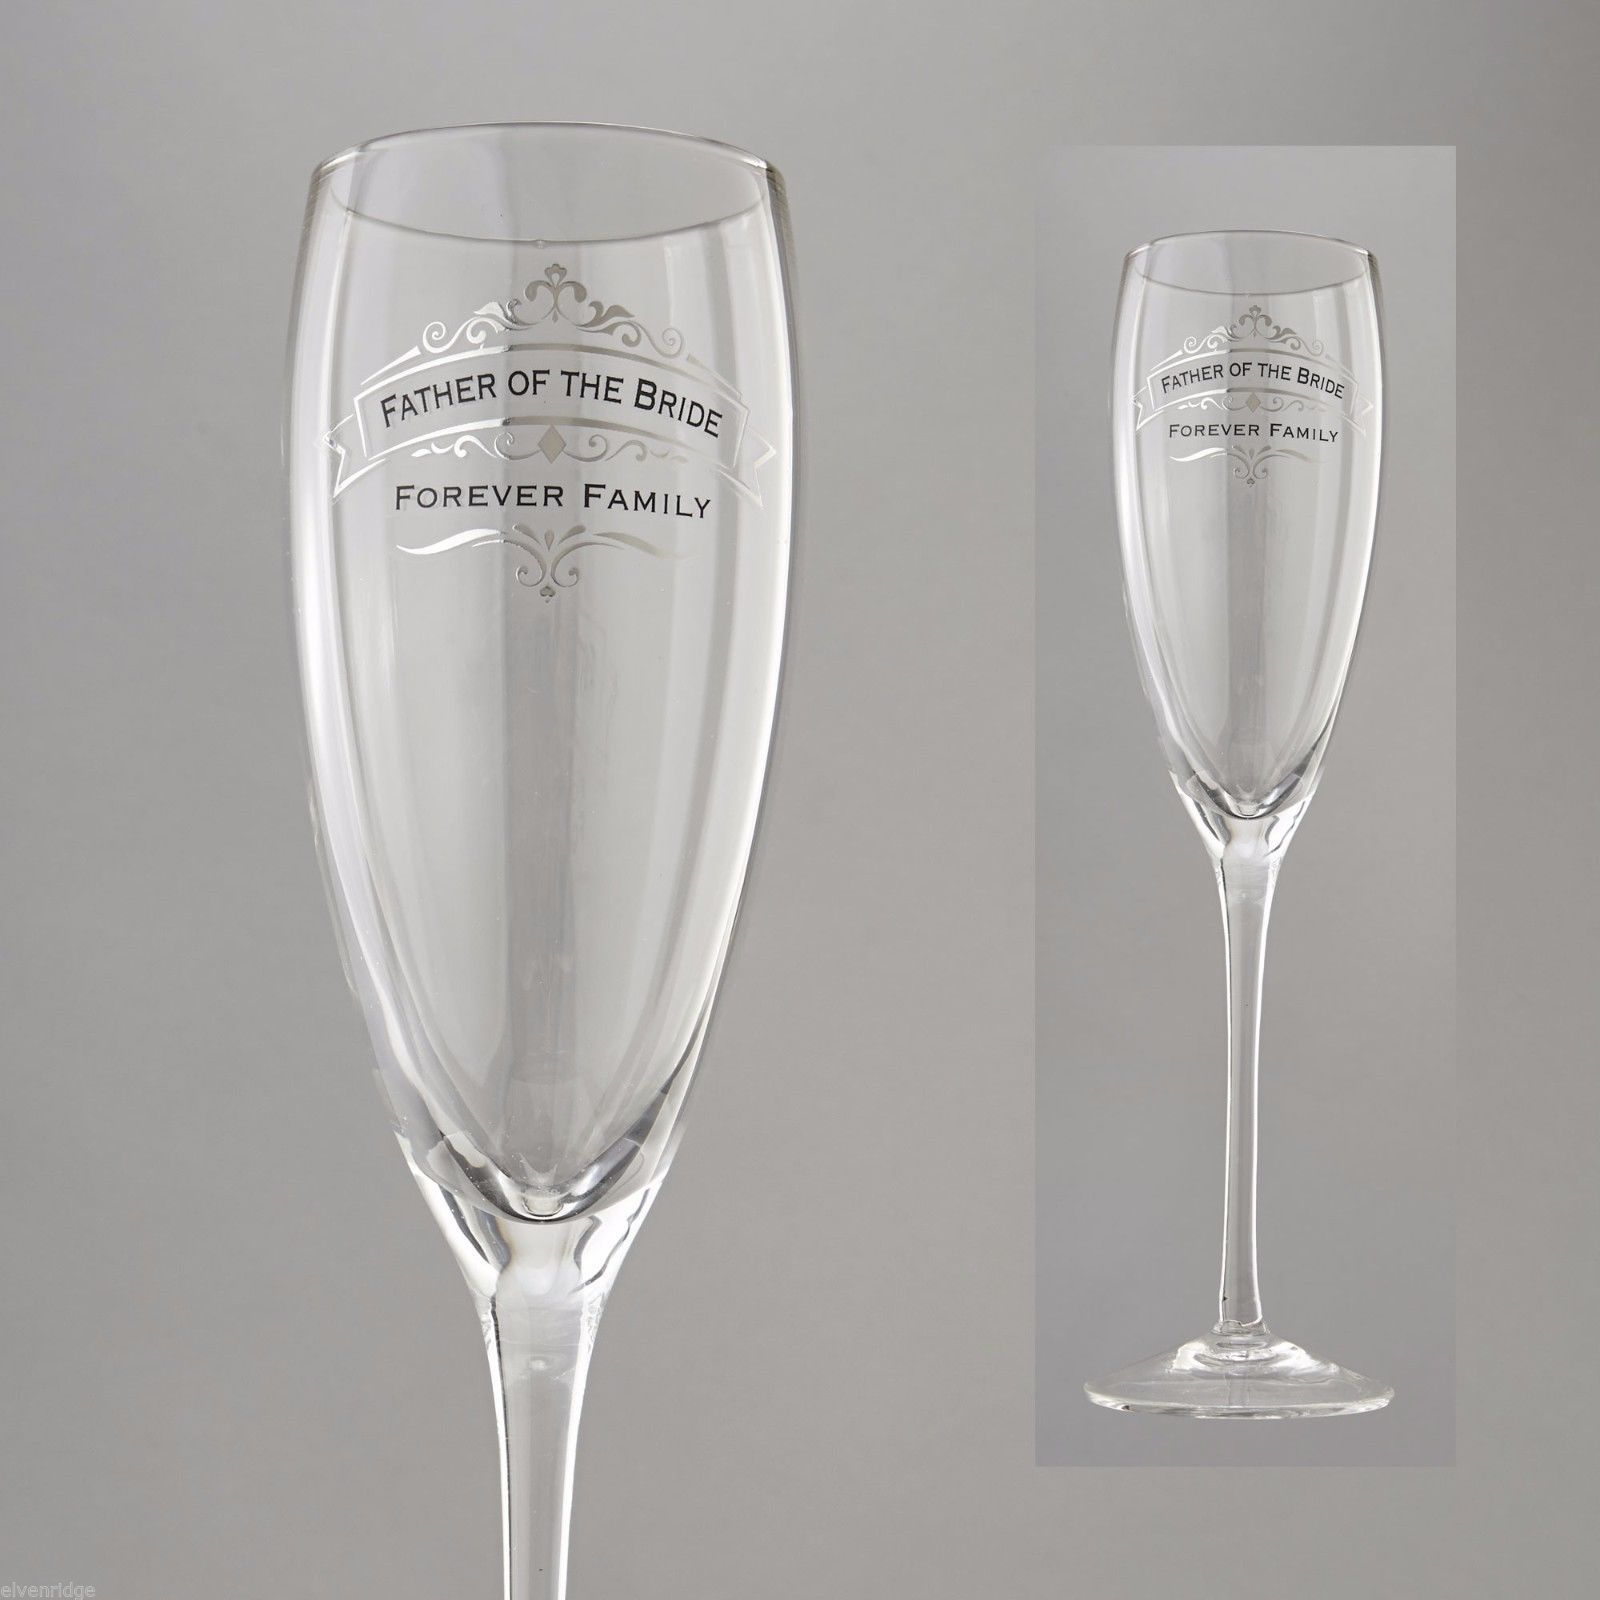 Father of the Bride Forever Family Toasting Glass Insignia Brand in Gift Box